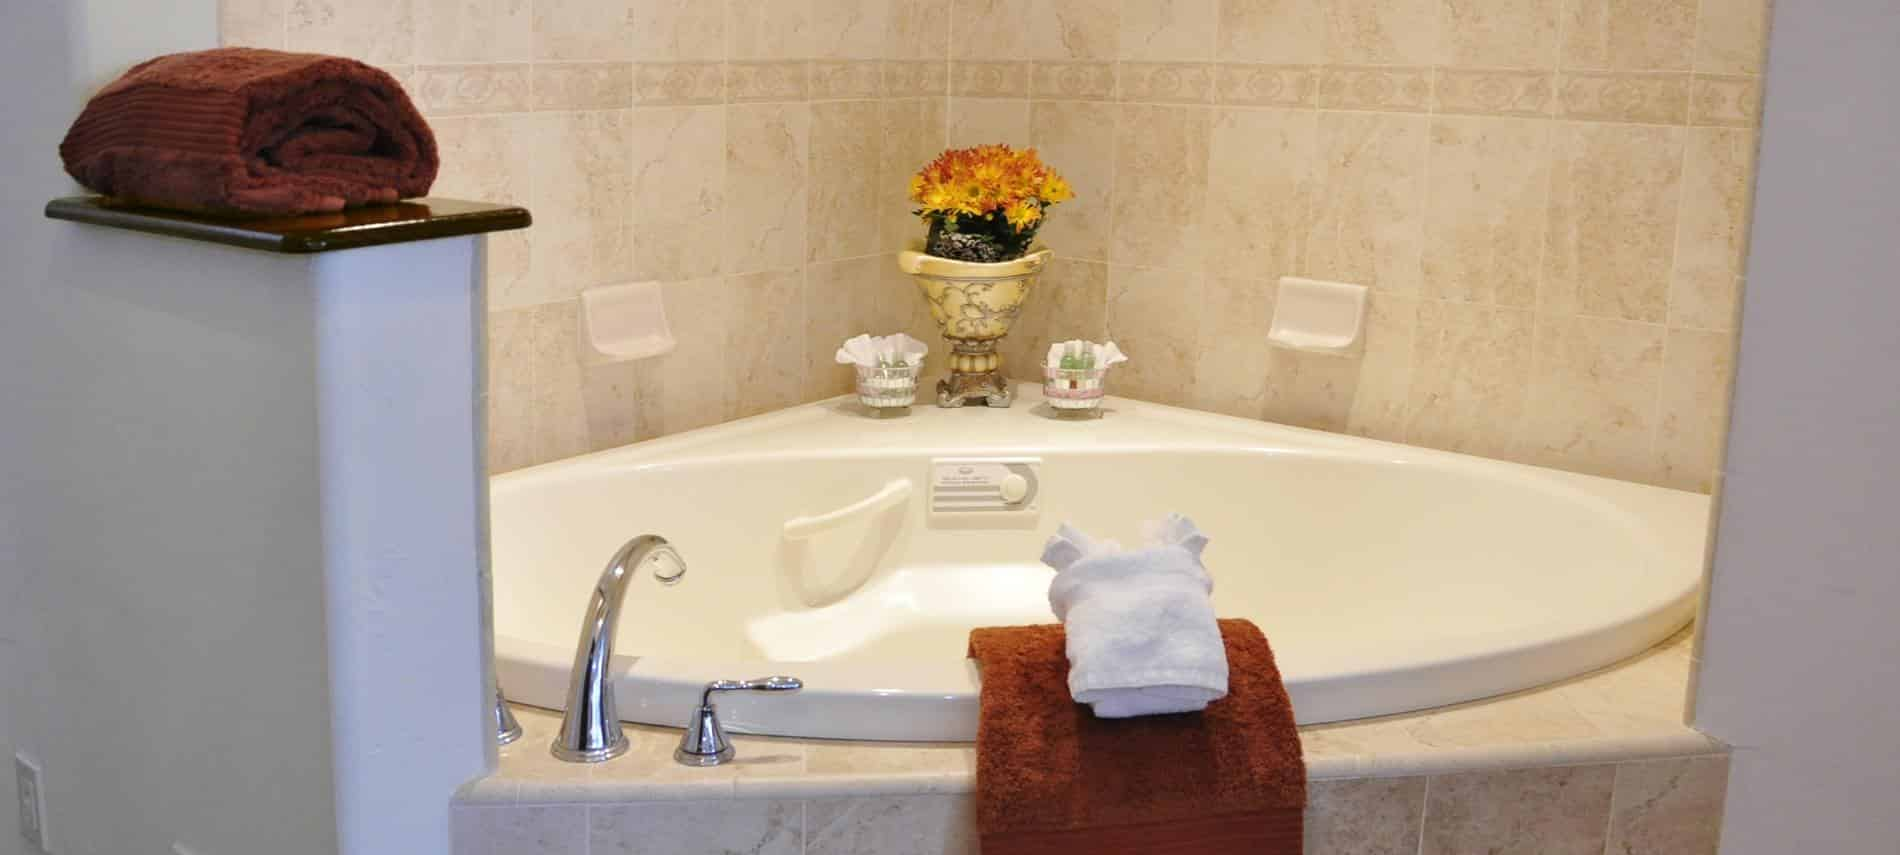 Santa Barbara guest room with corner whirlpool tub surrounded by tiled walls